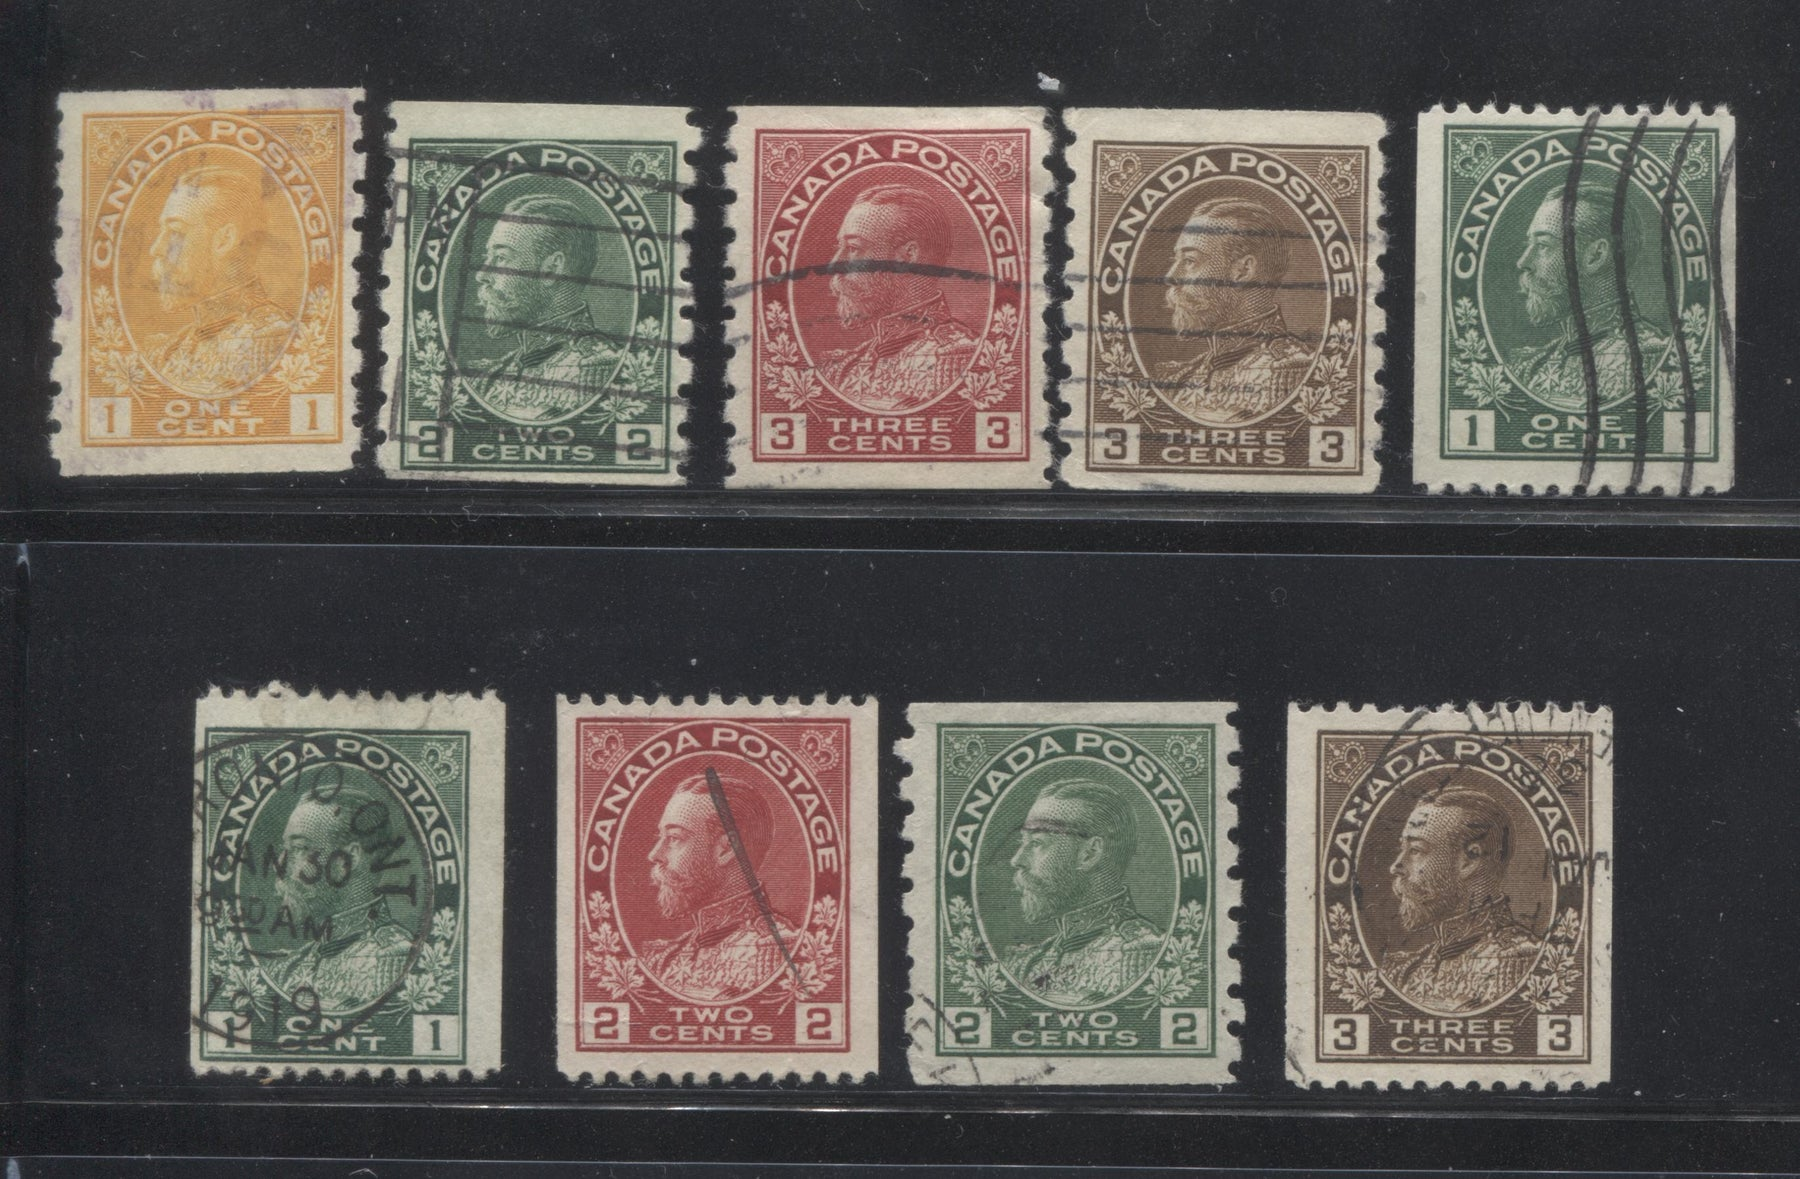 Canada #126/134 1c Orange Yellow - 3c Brown, King George V 1911-1928 Admiral Issue Coil Stamps, A Nice Fine Used Group of 9 Stamps Including Shade Varieties